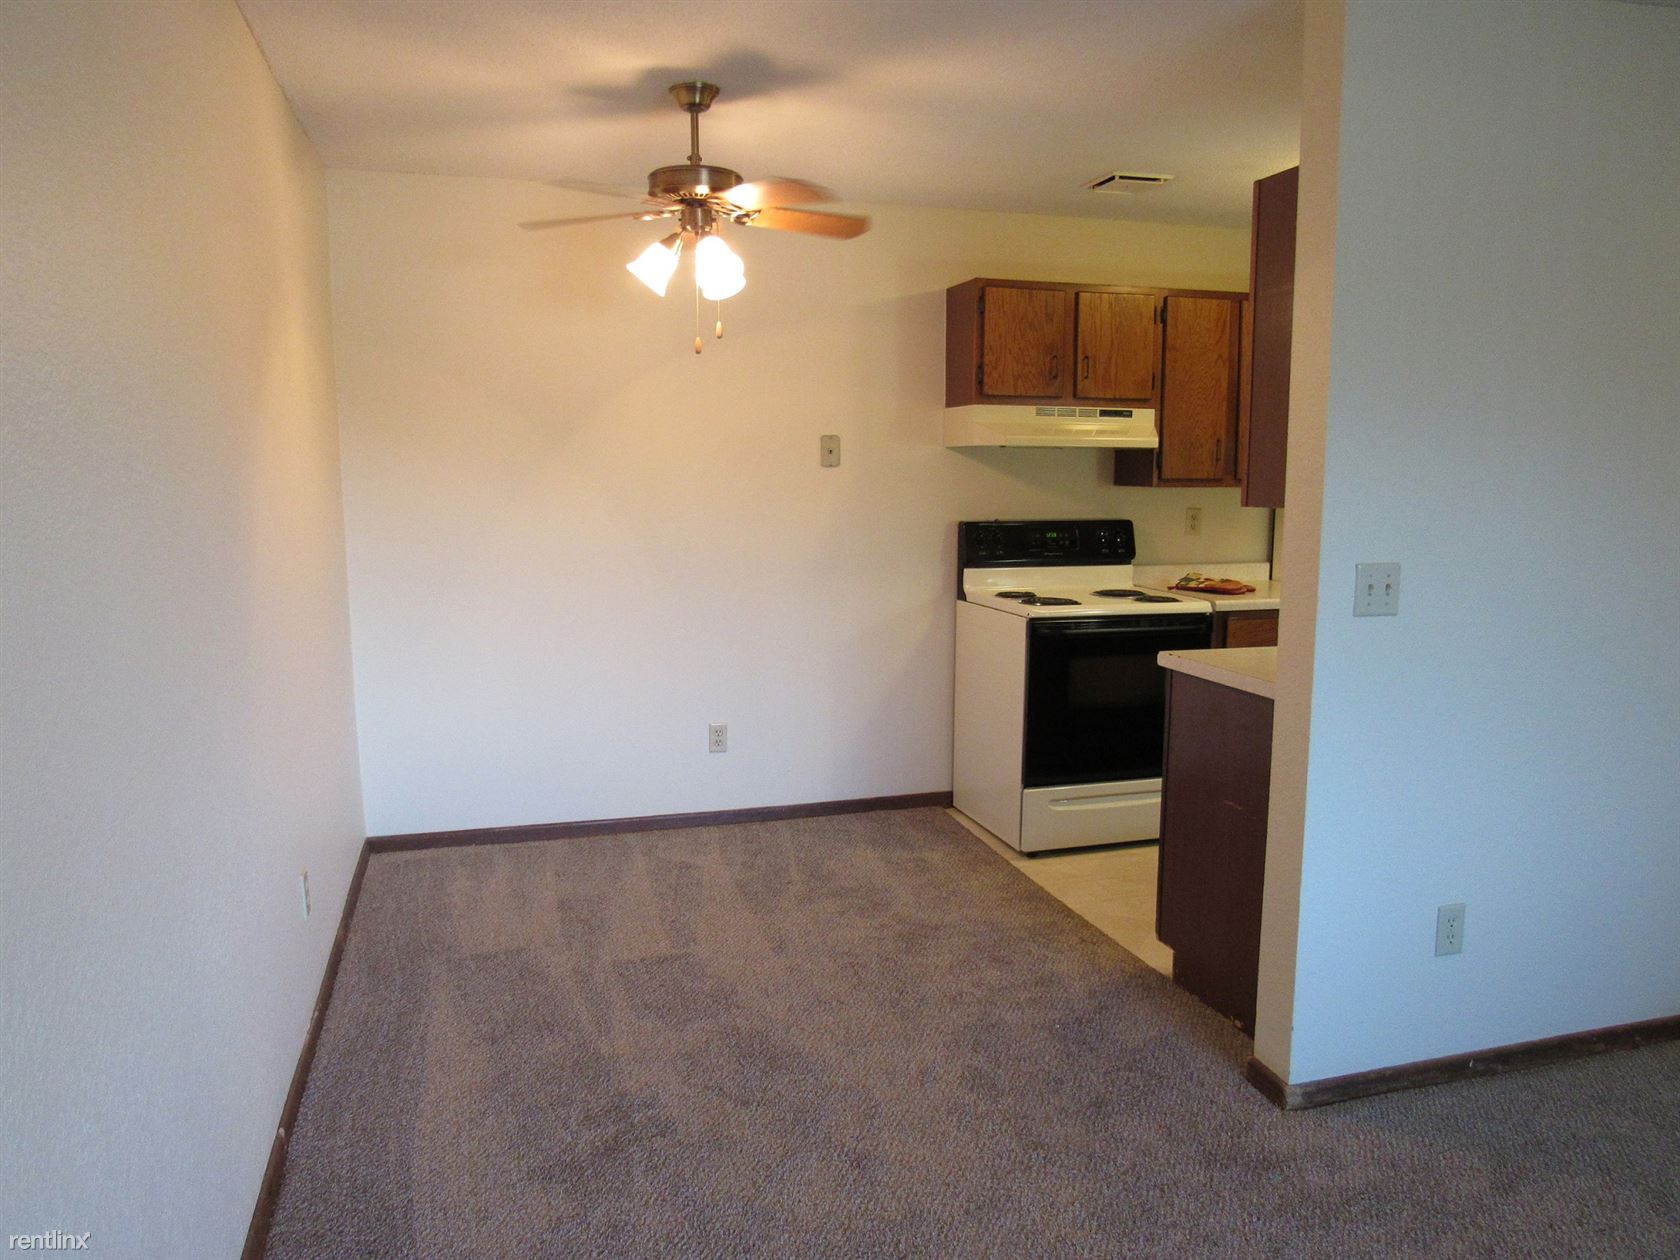 Apartment for Rent in Wyoming